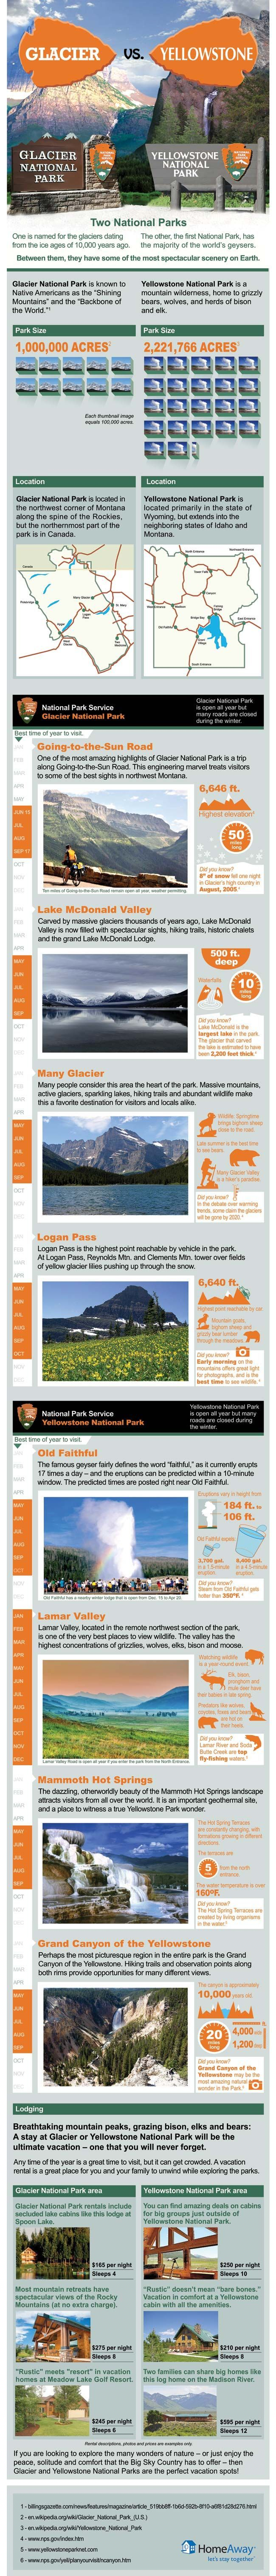 Glacier vs. Yellowstone National Parks: How do They Compare? #Infographic #travel #nature